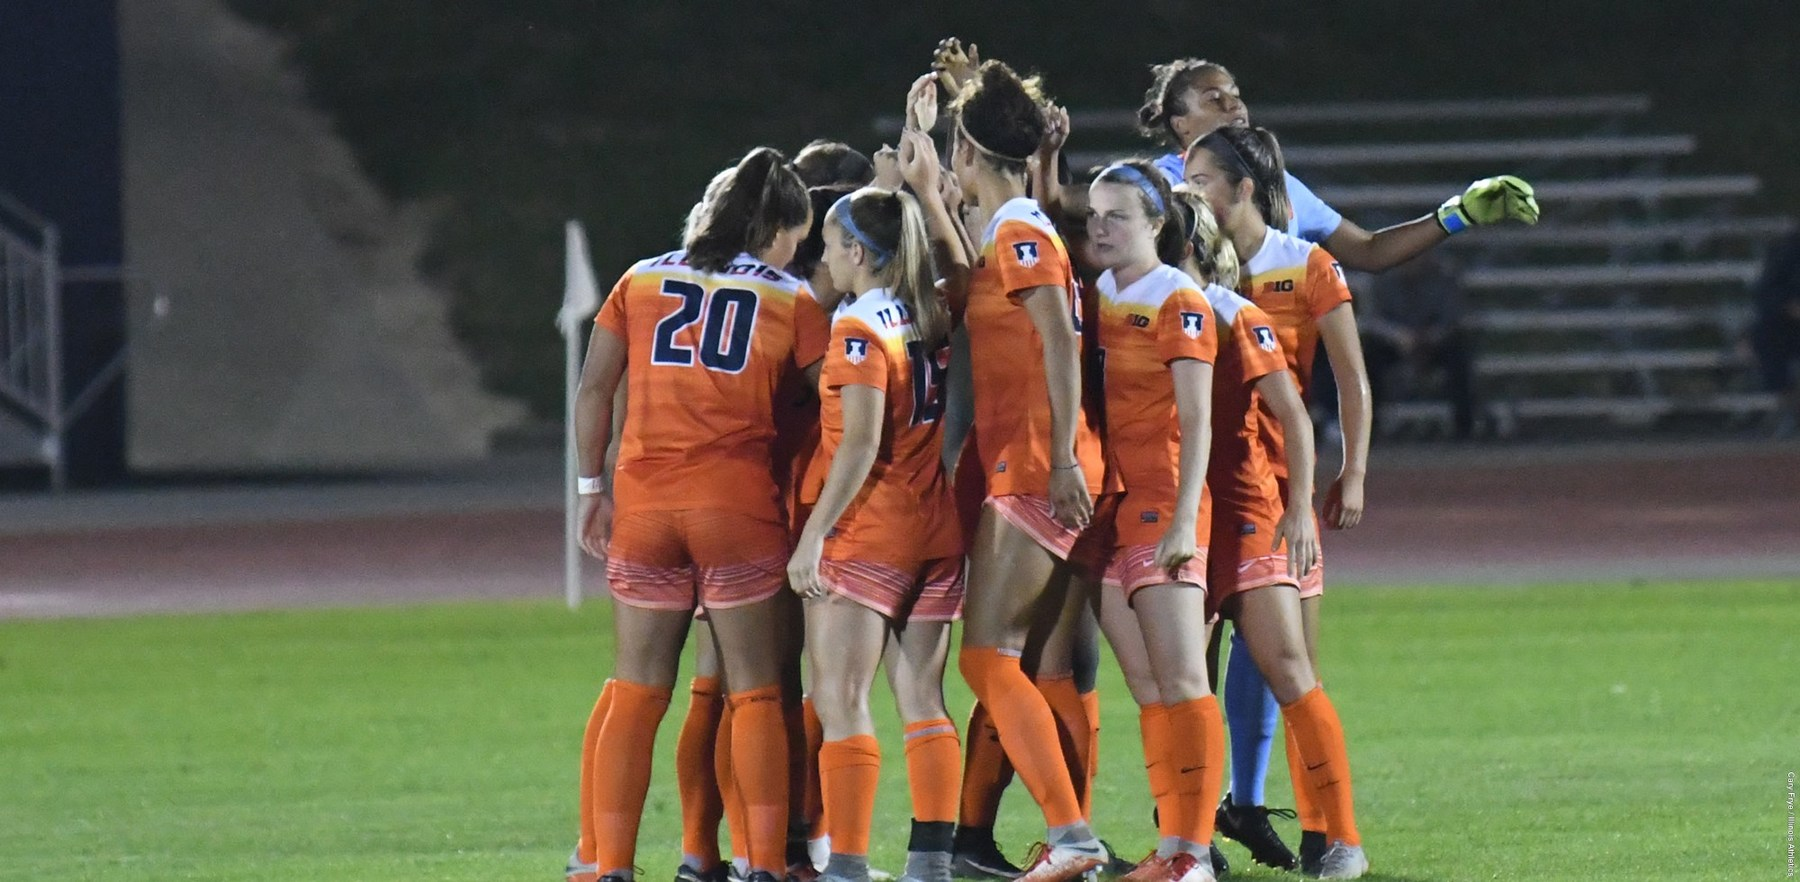 Illinois Soccer team members huddle on field during the 2018 season